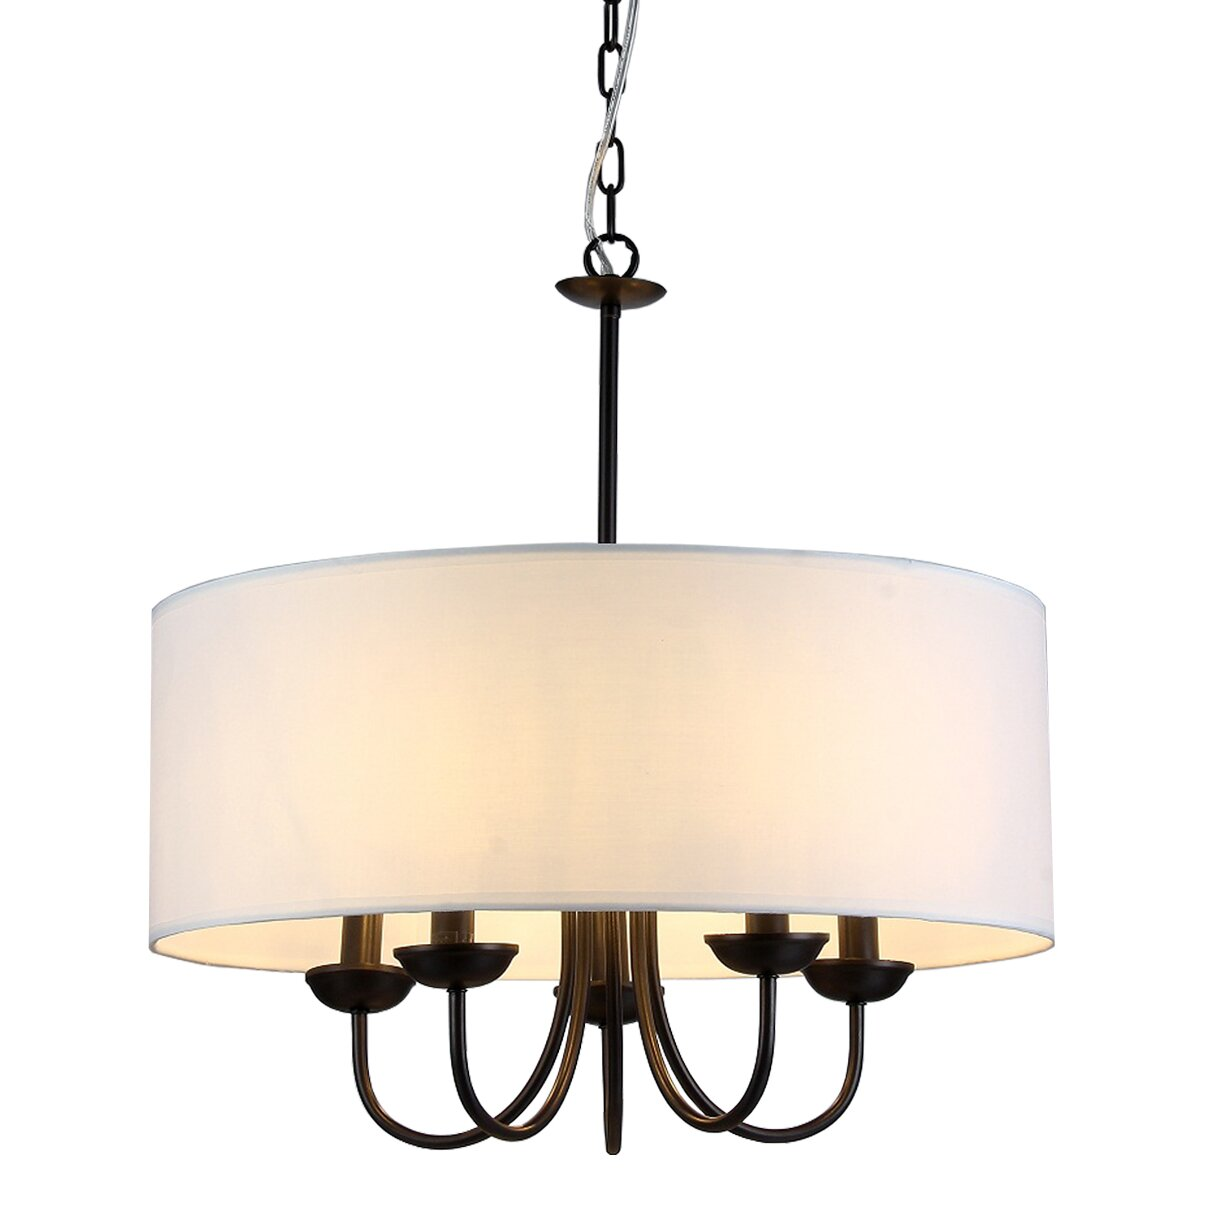 Drum Light Chandelier Dining Room